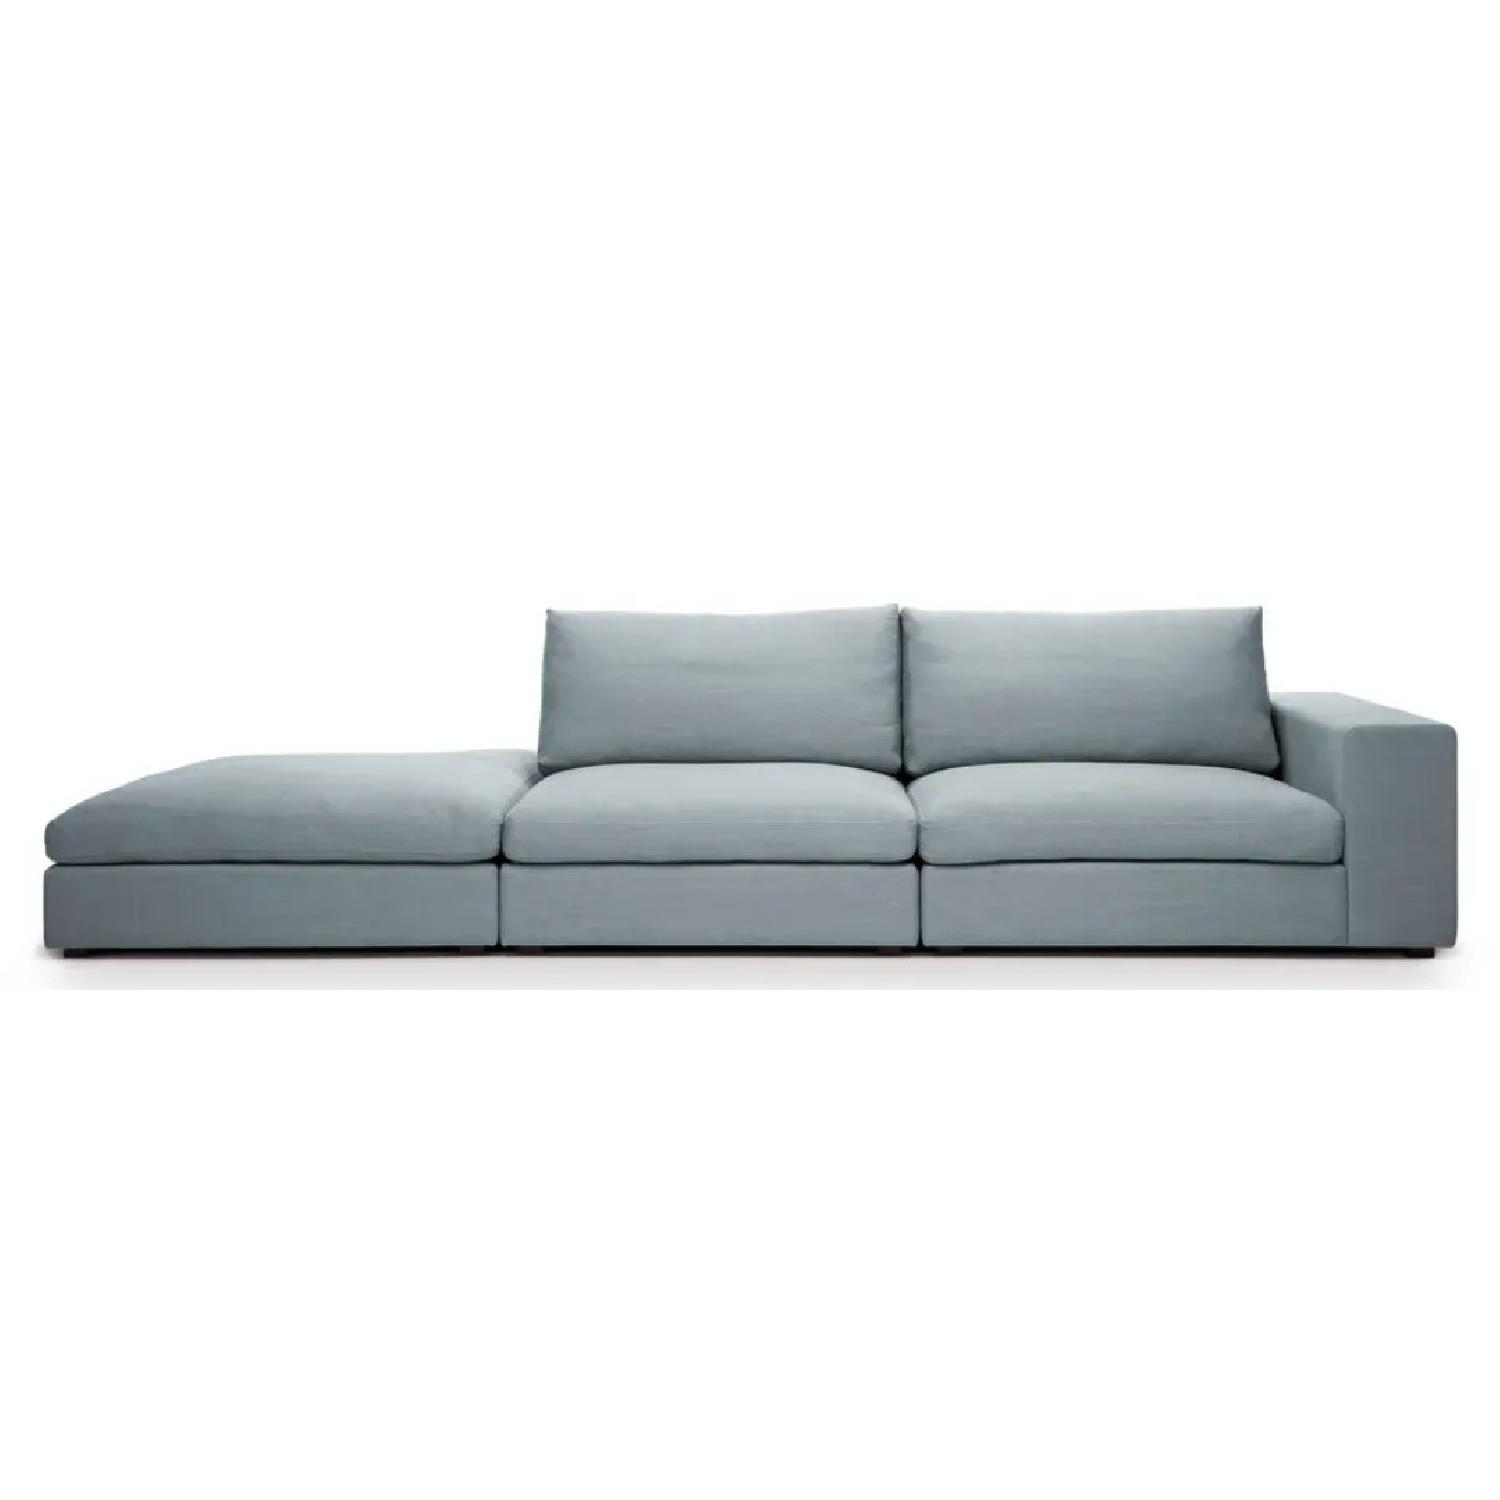 Article Cube Glacier Blue Modular Sofa - image-6